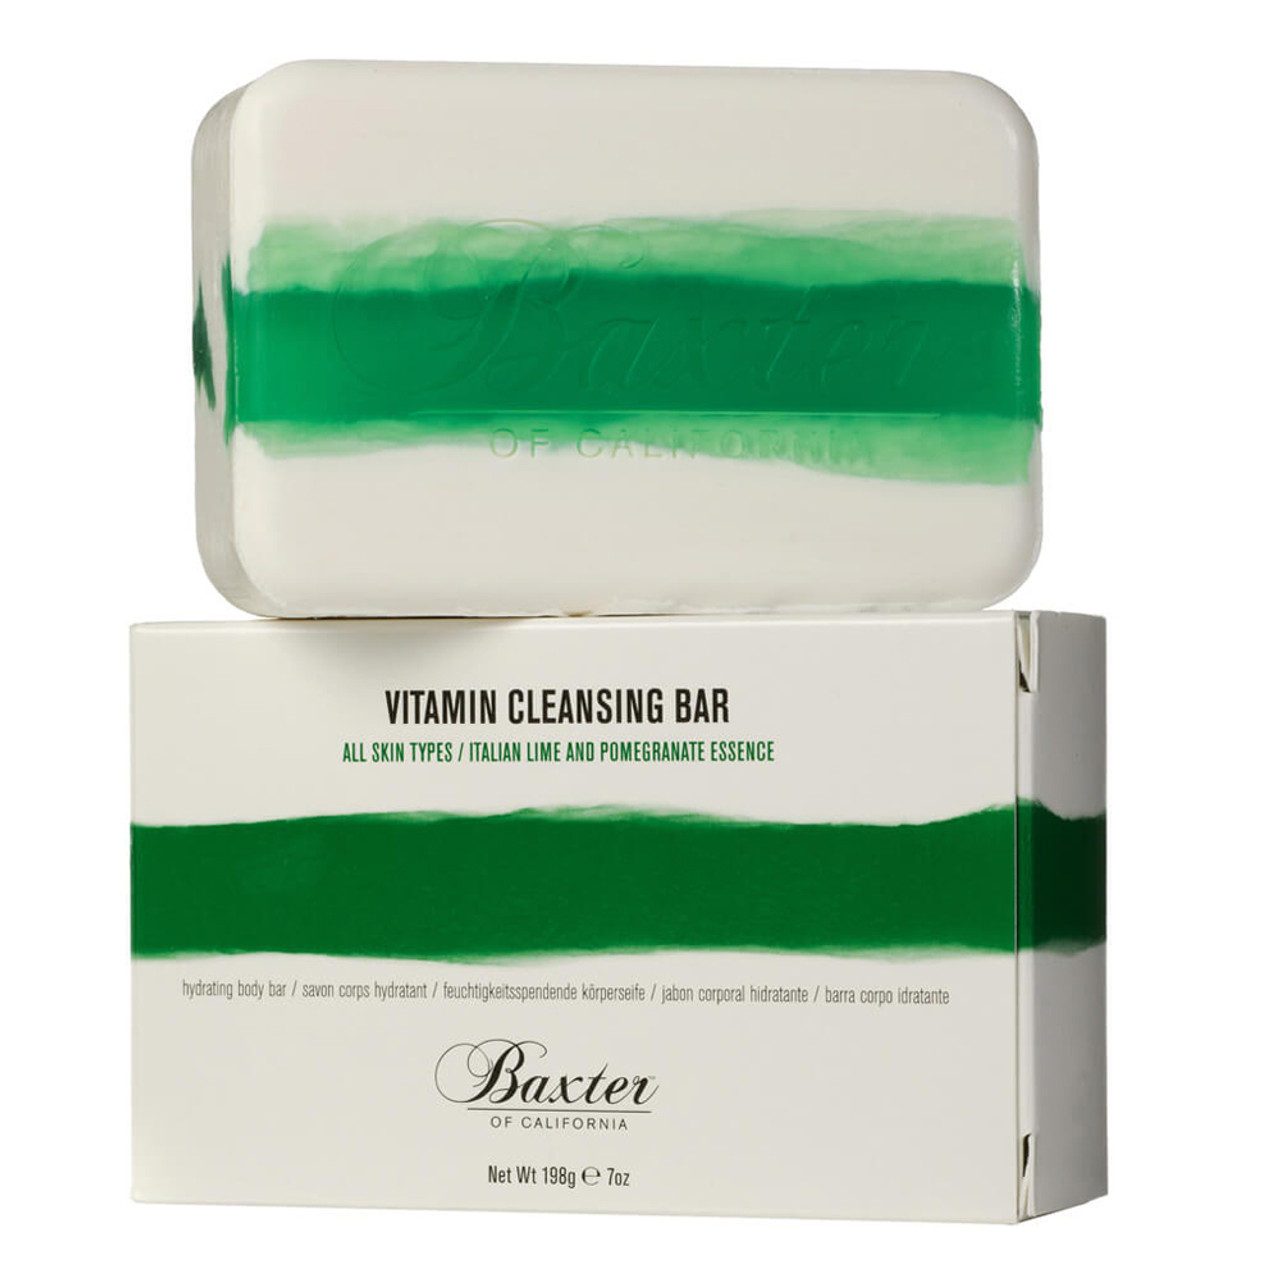 Baxter of California Vitamin Cleansing Bar Italian Lime & Pomegranate